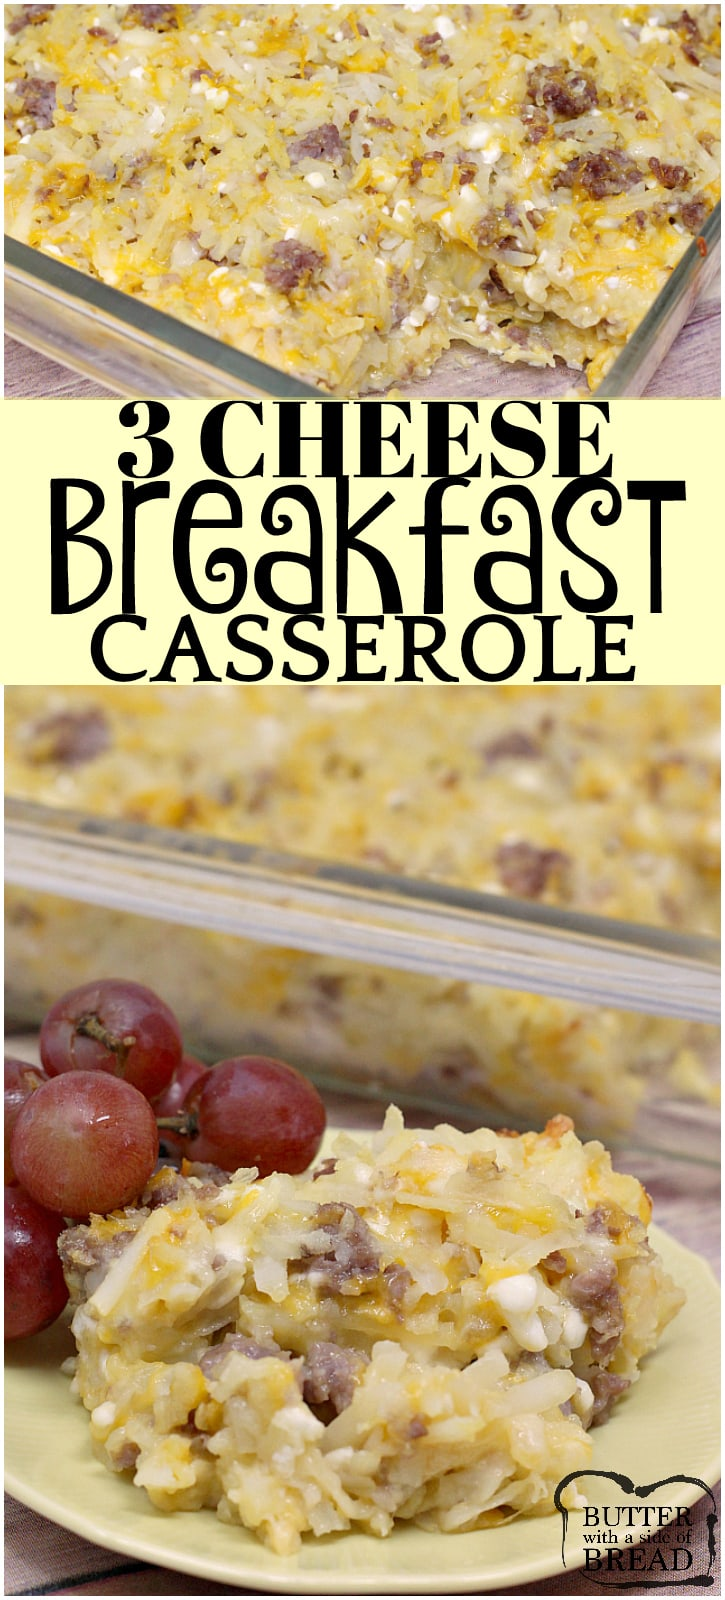 3-Cheese Breakfast Casserole combines cheddar, Swiss and cottage cheese along with hash browns and your favorite breakfast meat!